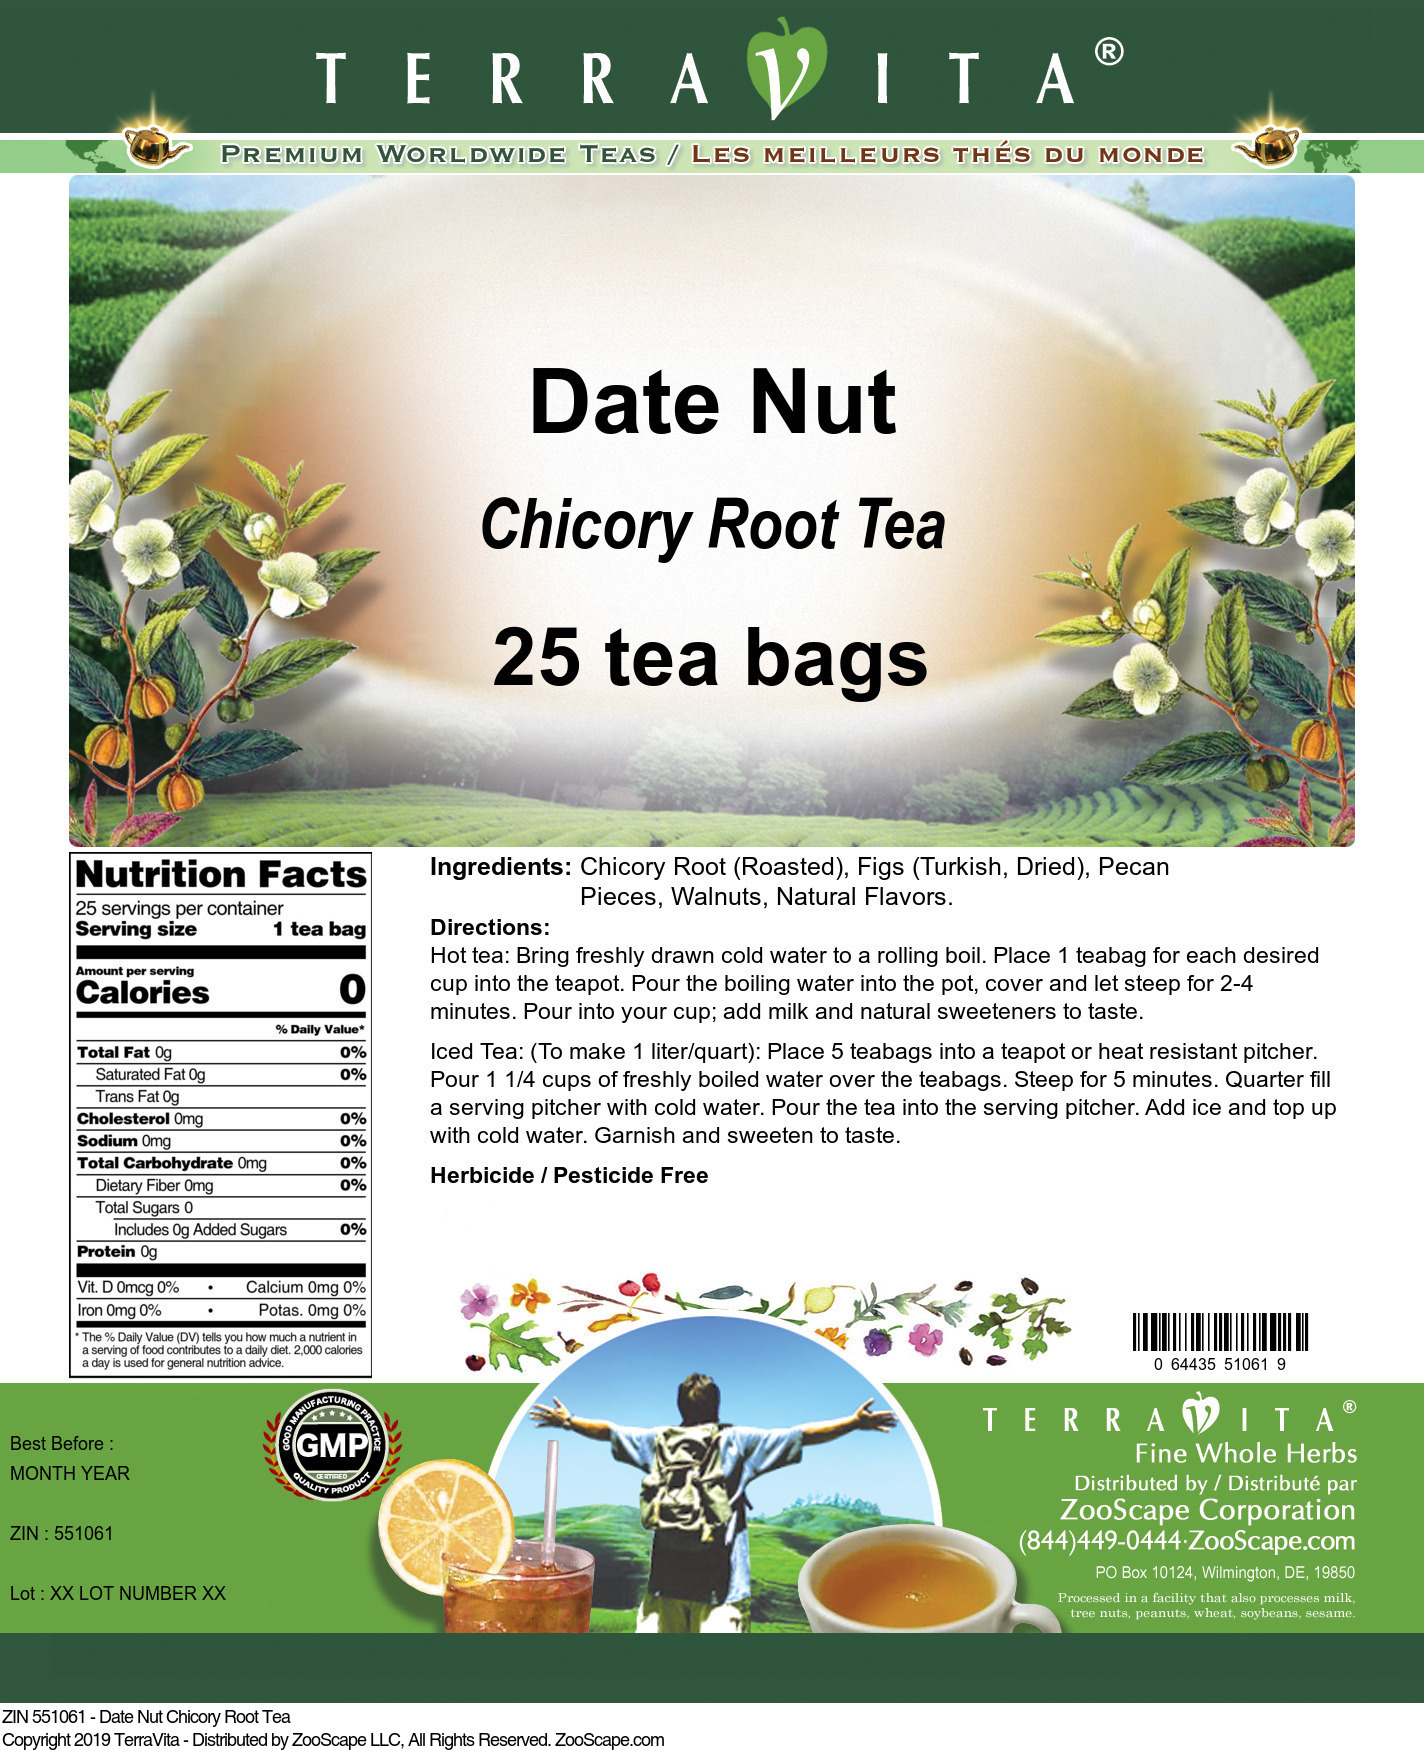 Date Nut Chicory Root